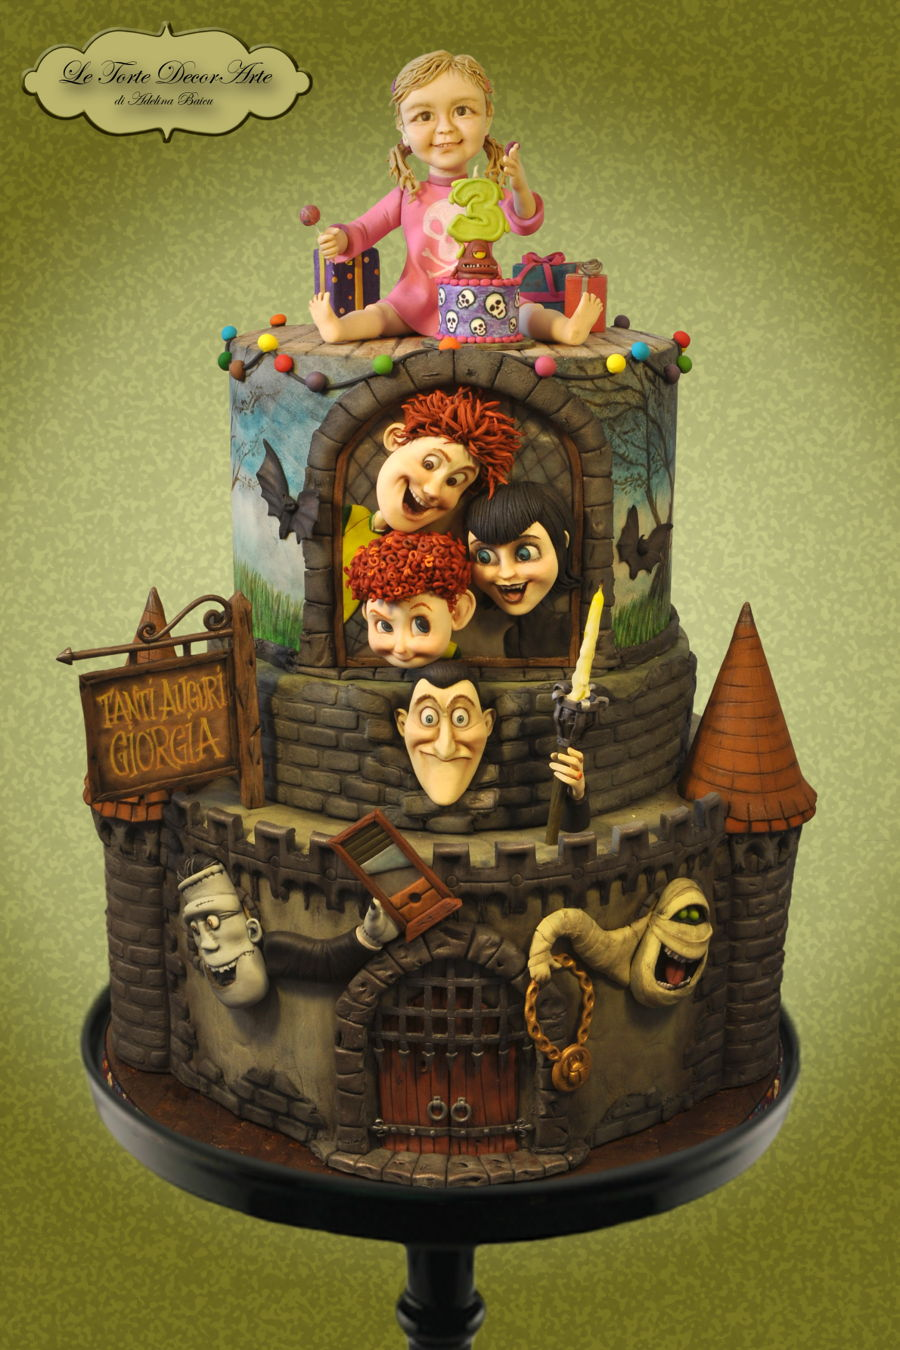 Hotel Transylvania on Cake Central